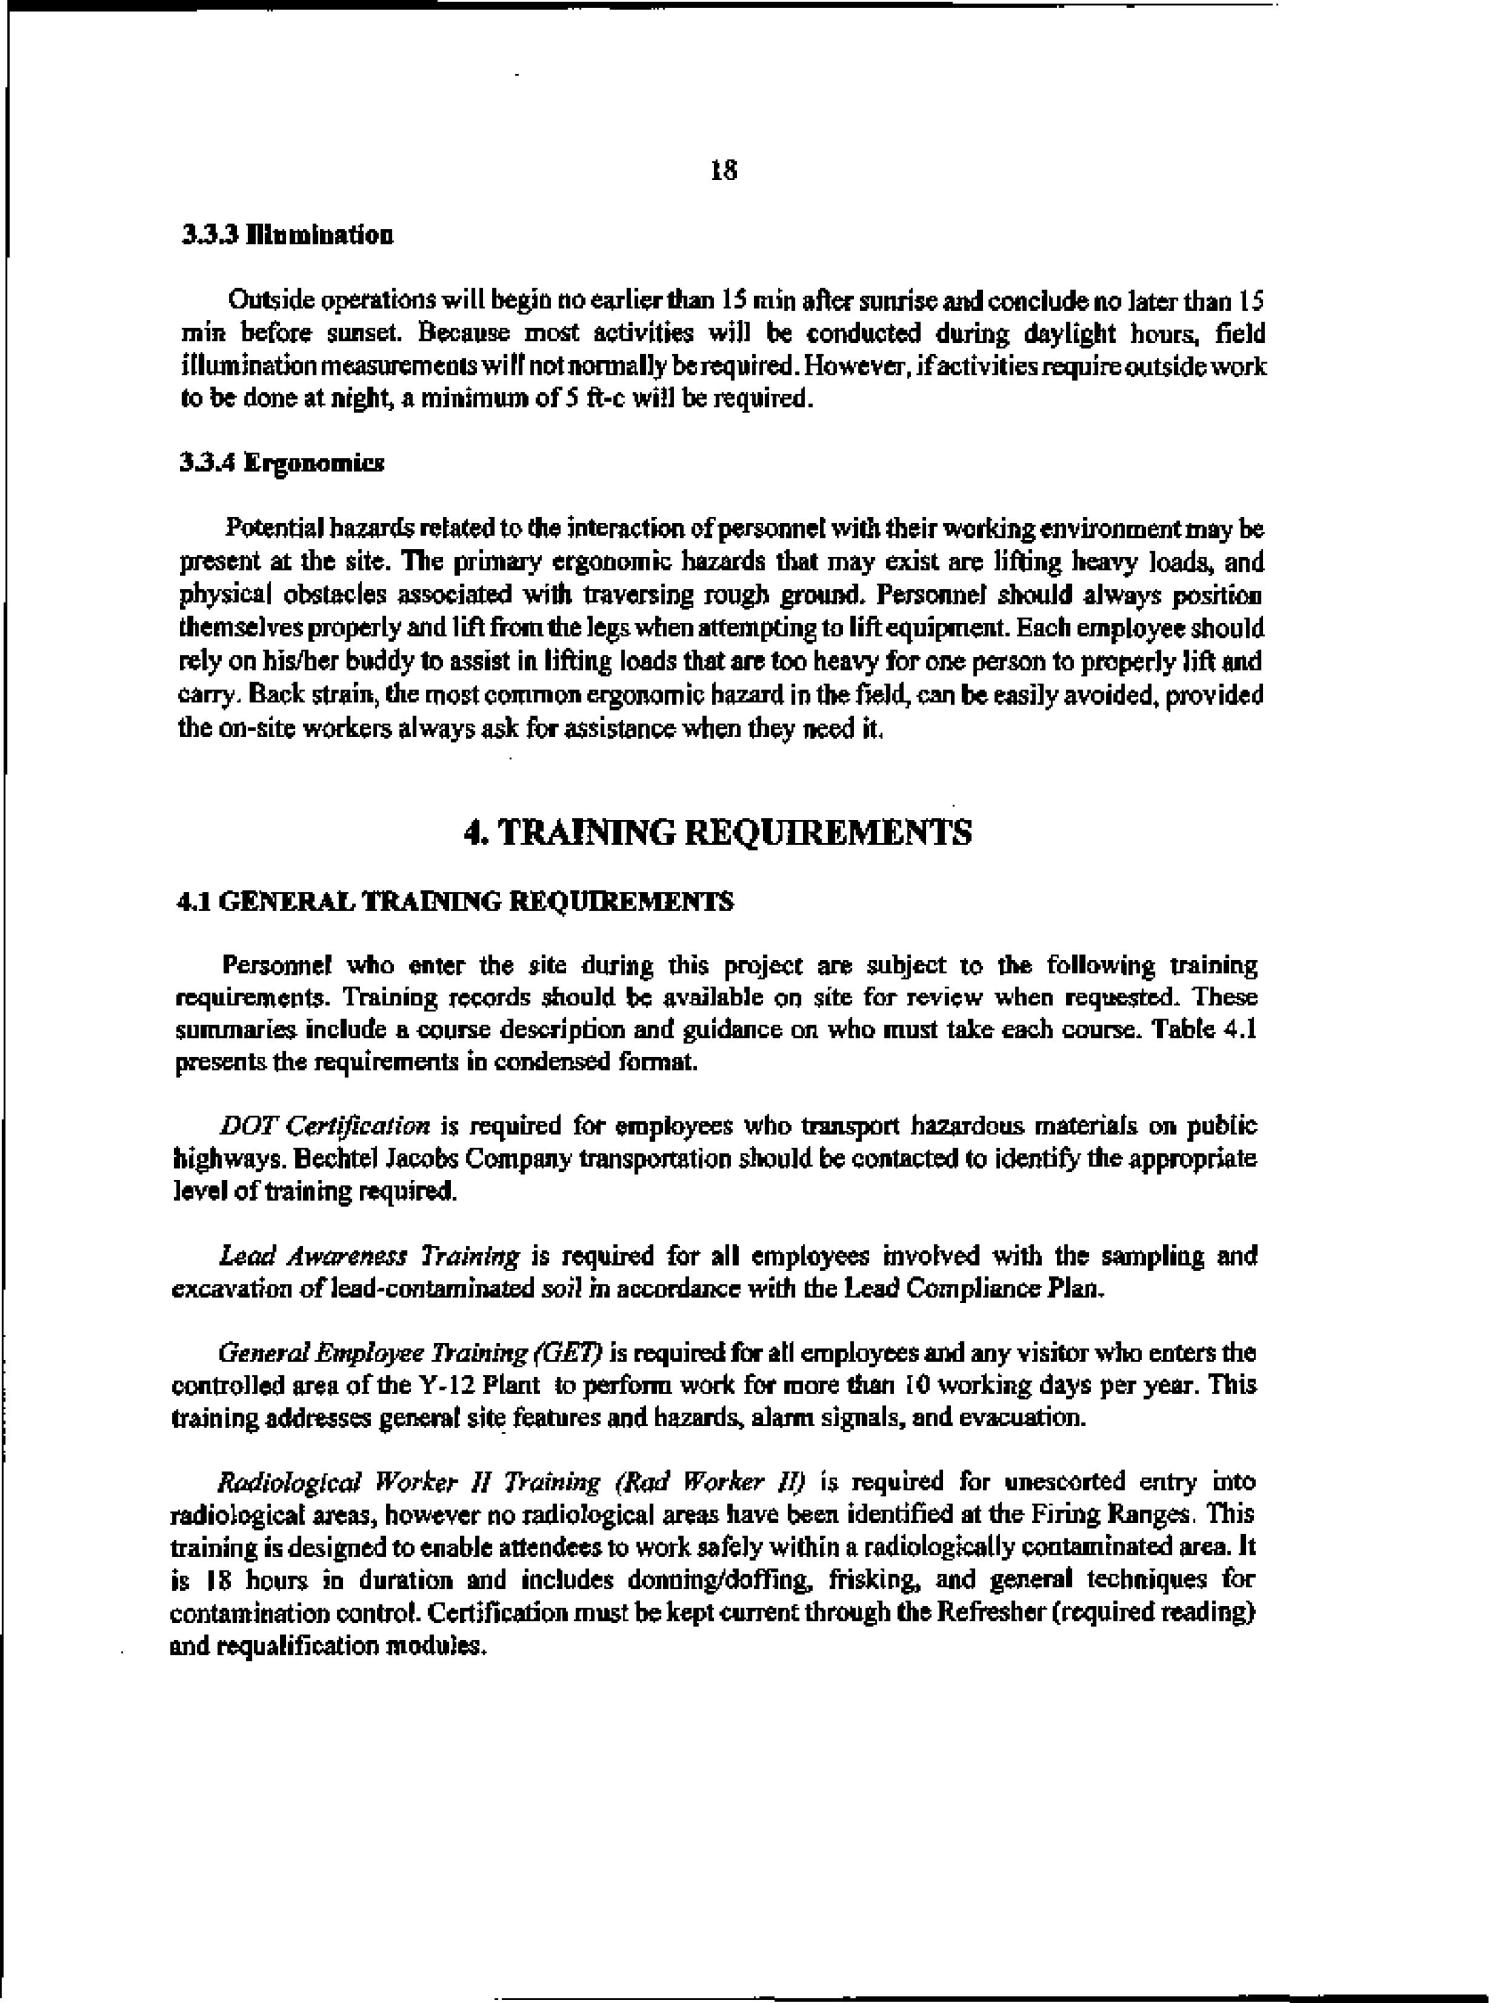 Health and safety plan for the removal action at the former YS-860 Firing Ranges, Oak Ridge Y-12 Plant, Oak Ridge, Tennessee                                                                                                      [Sequence #]: 28 of 52